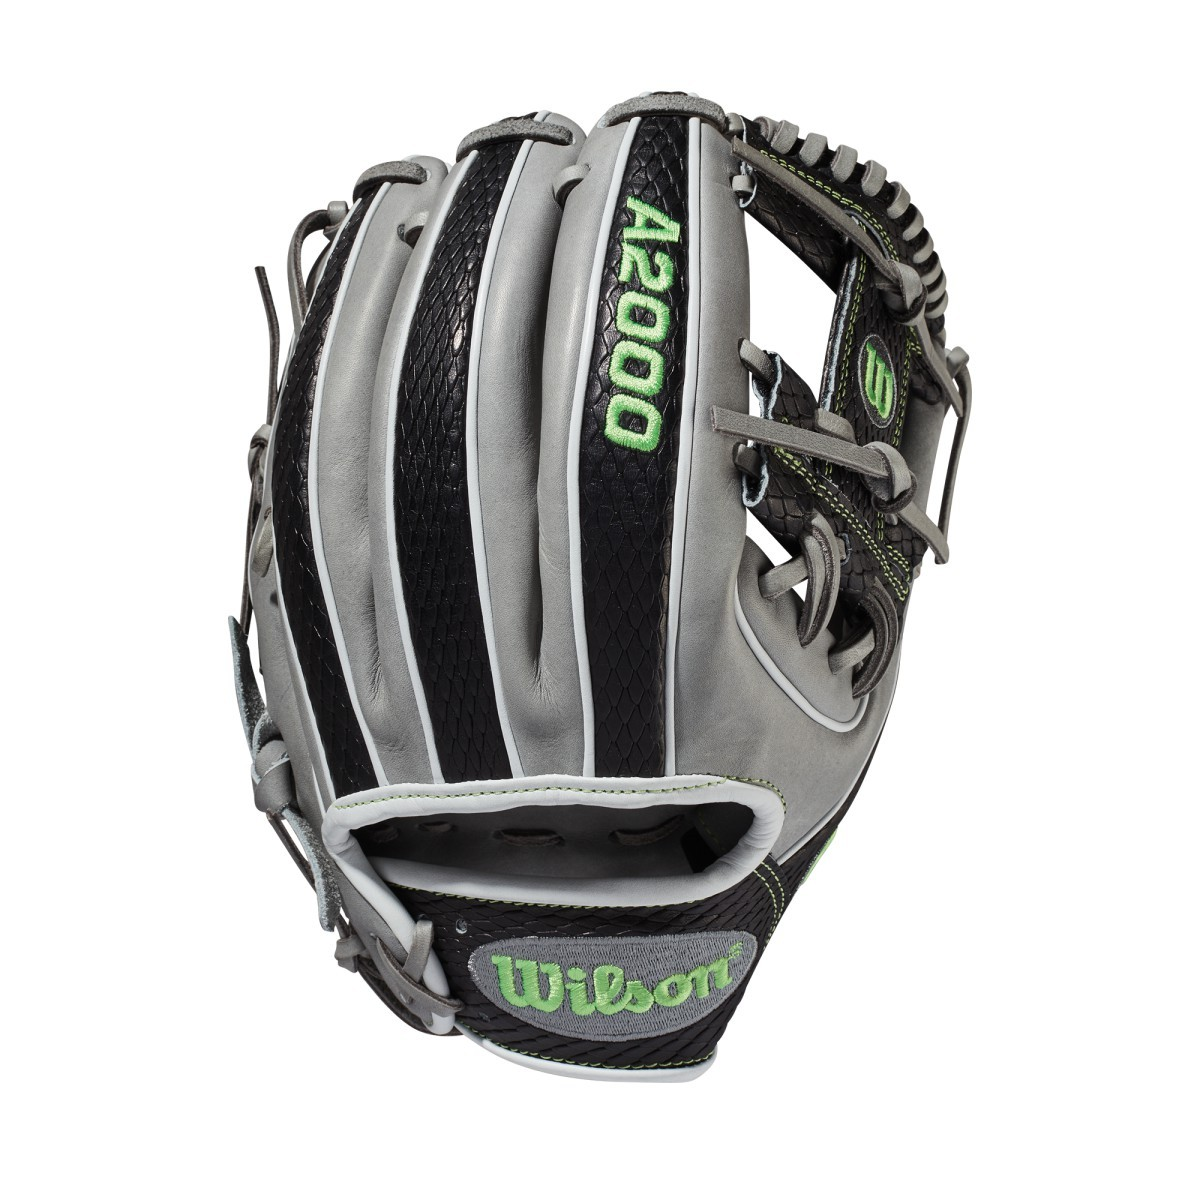 wilson-a2000-baseball-glove-april-gotm-1786-11-5-right-hand-throw WTA20RB19LEAPR-RightHandThrow  887768824372 Show off your dark side with the April GOTM model. Black